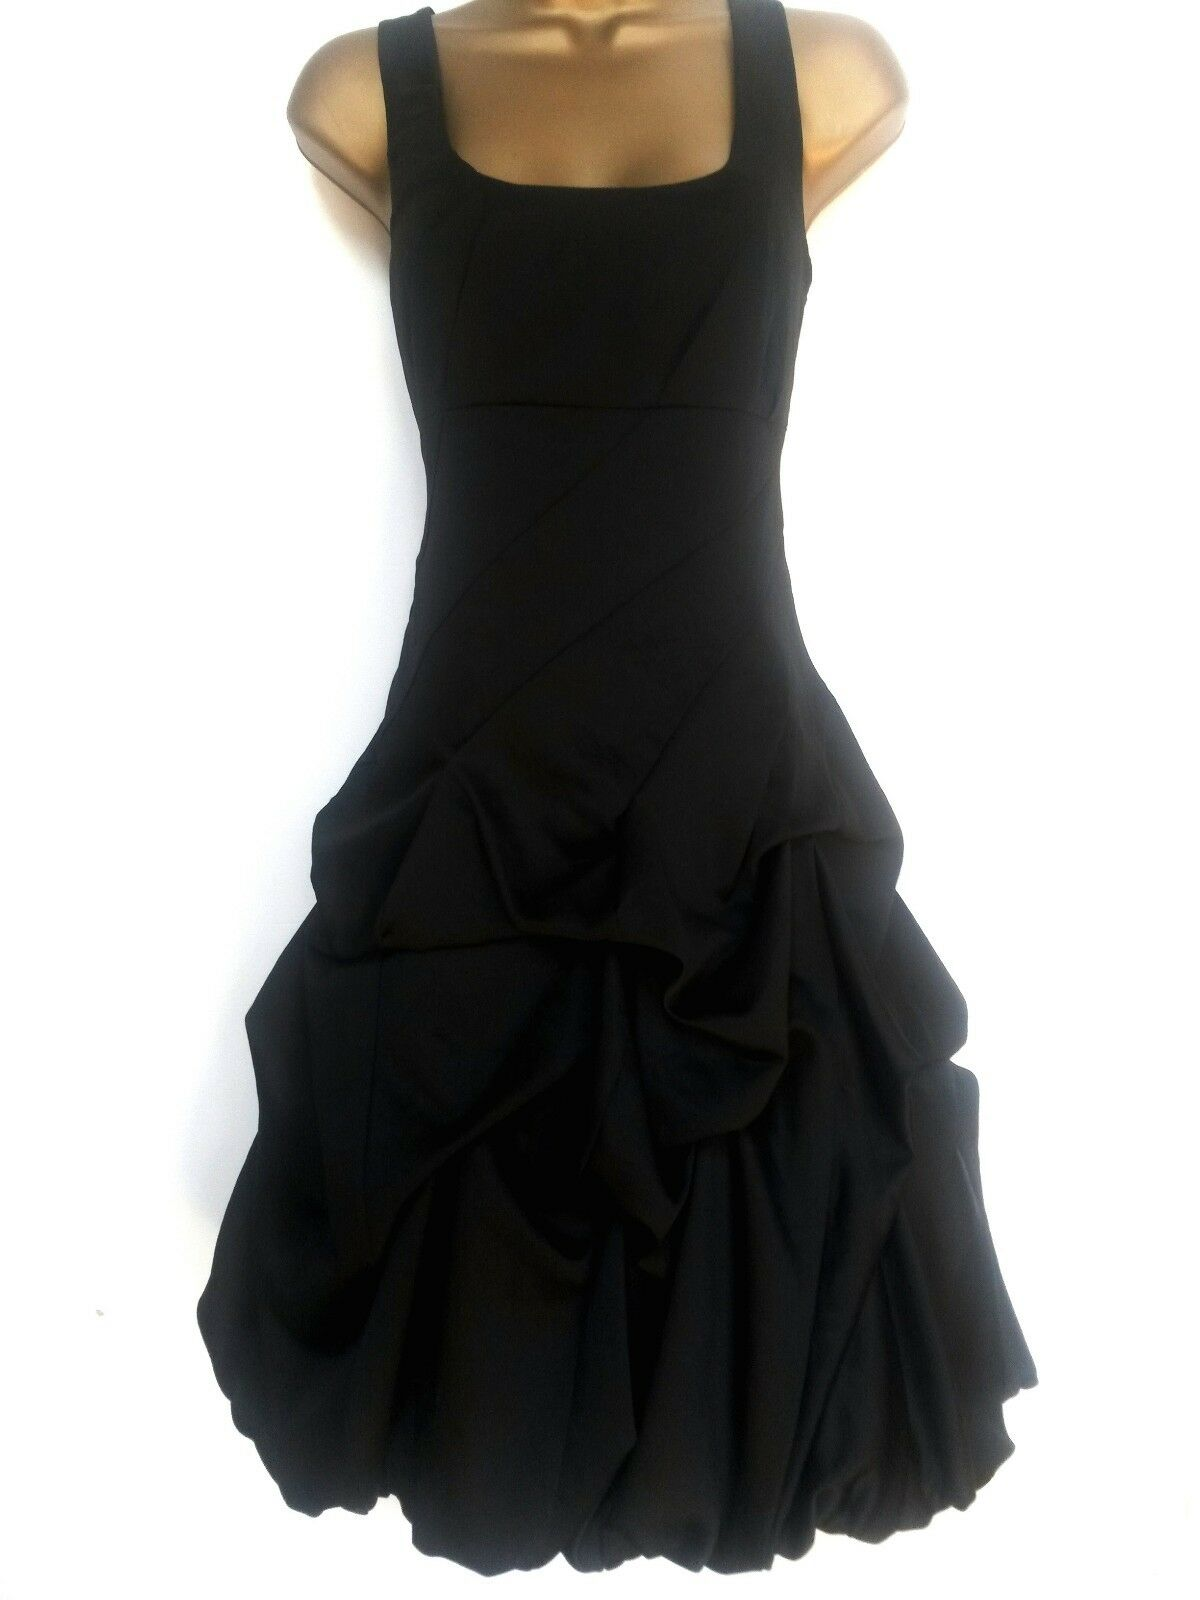 MONSOON ✩ SPLENDIDA Nero Carmel autostop Ruffle Cocktail Party Dress ✩ NUOVO